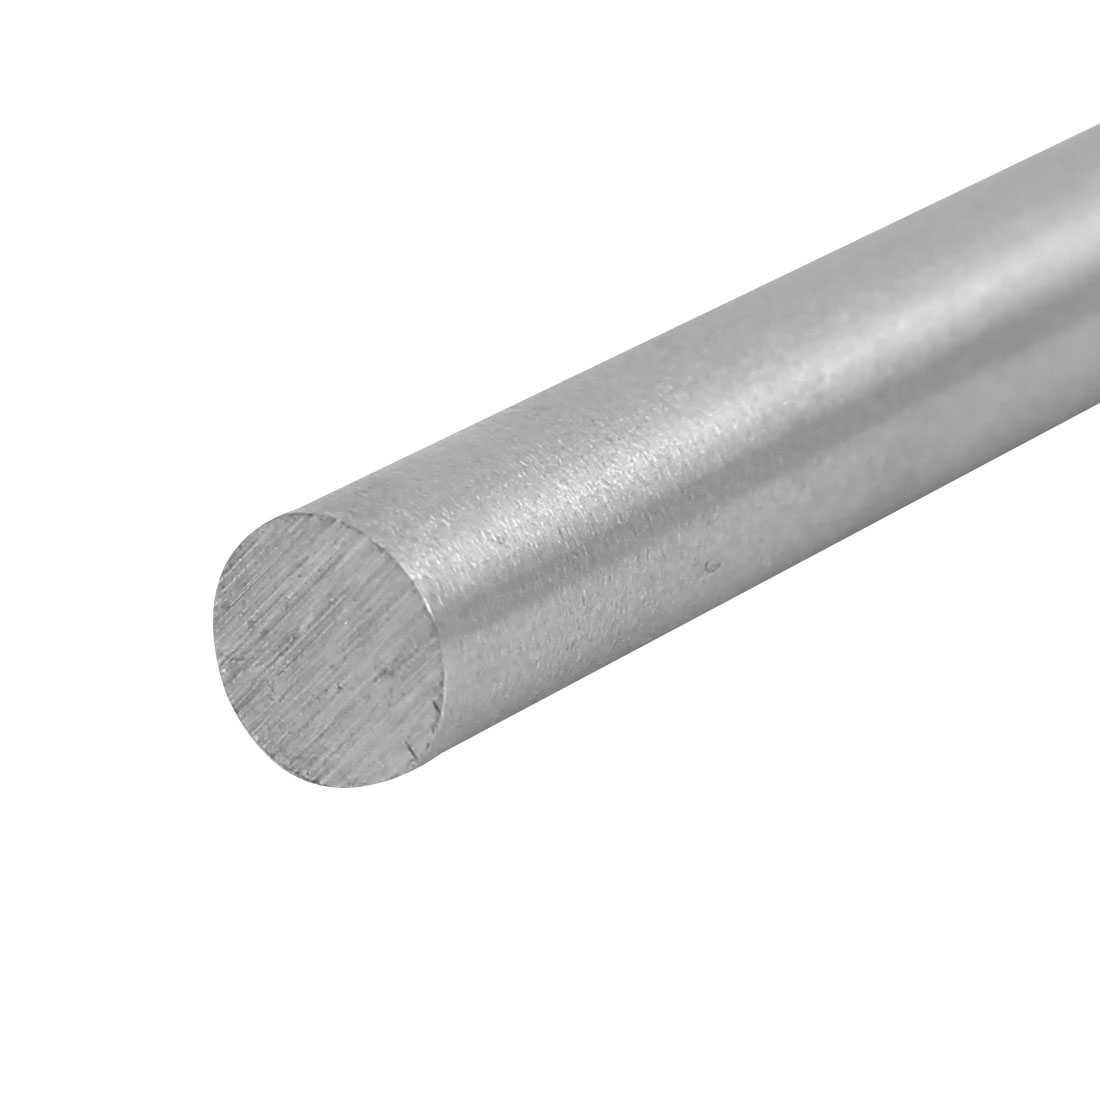 8mm Dia 200mm Length HSS Round Shaft Rod Bar Lathe Tools Gray 2pcs